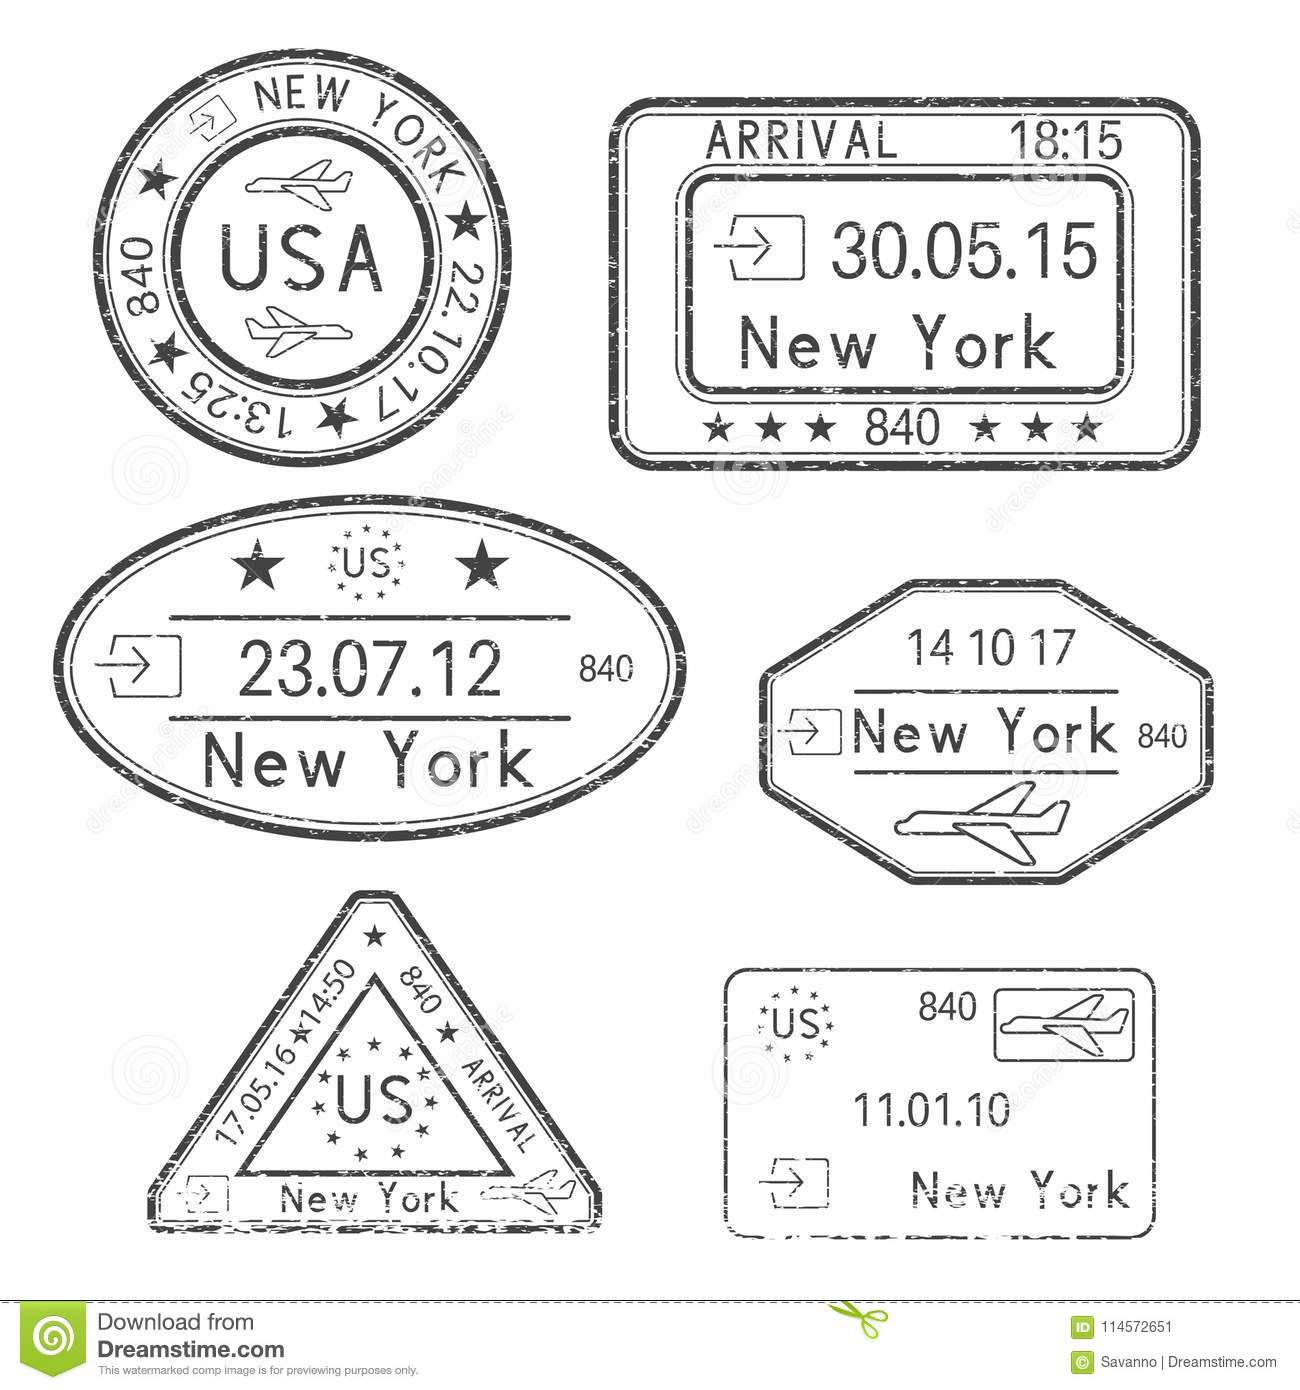 Passport Stamps Arrival To New York USA Black Set Of Ink